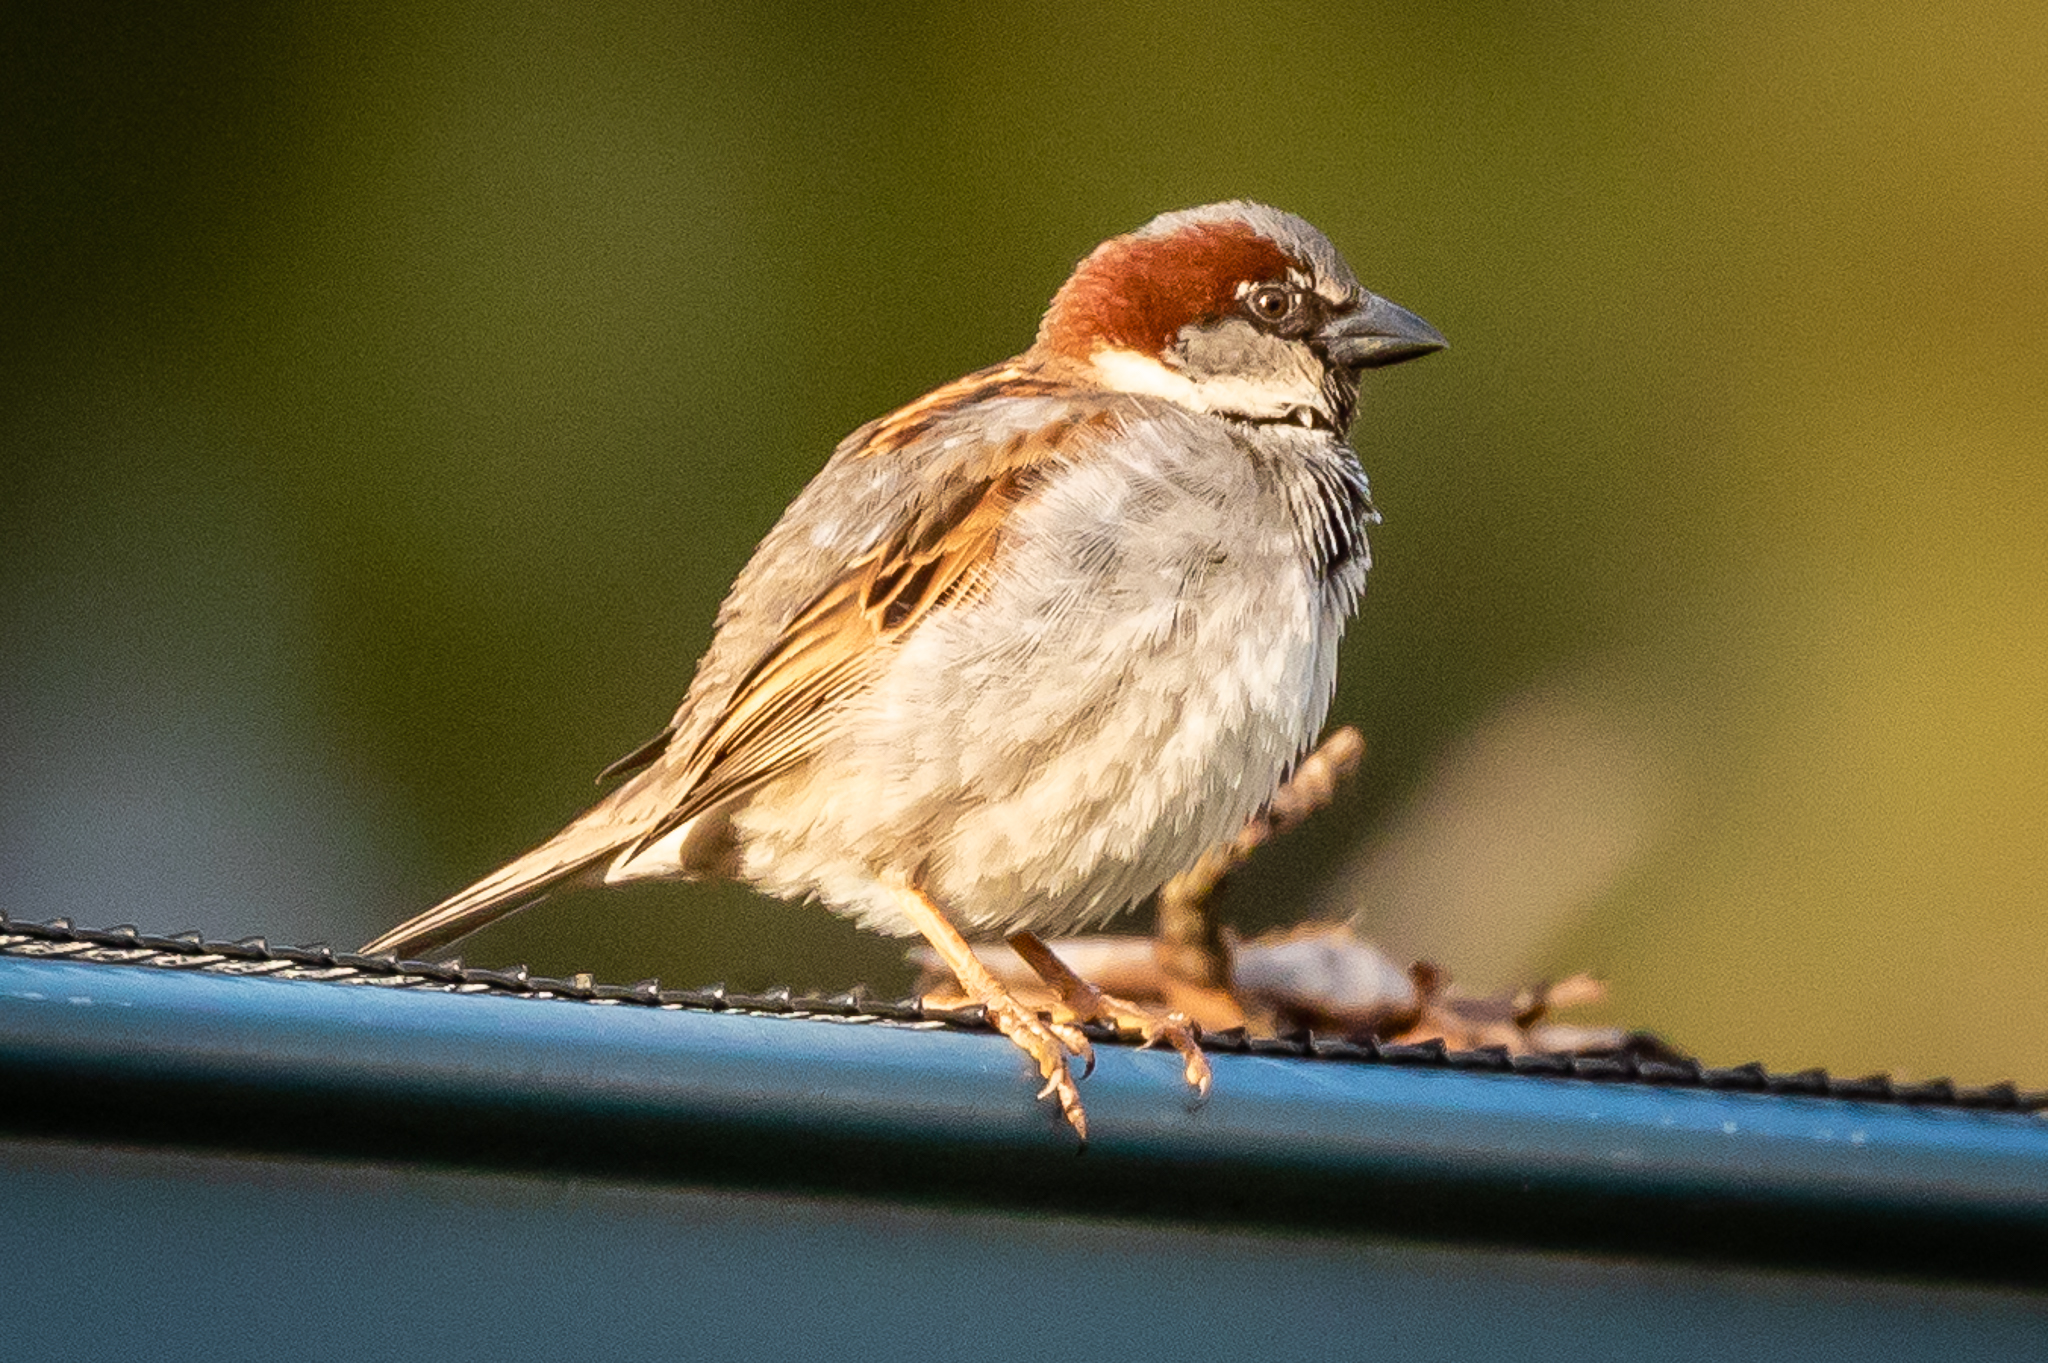 Fifth place the introduced House Sparrow numbers are decreasing in many cities but are still common in Tasmania, along with Blackbirds and Starlings.